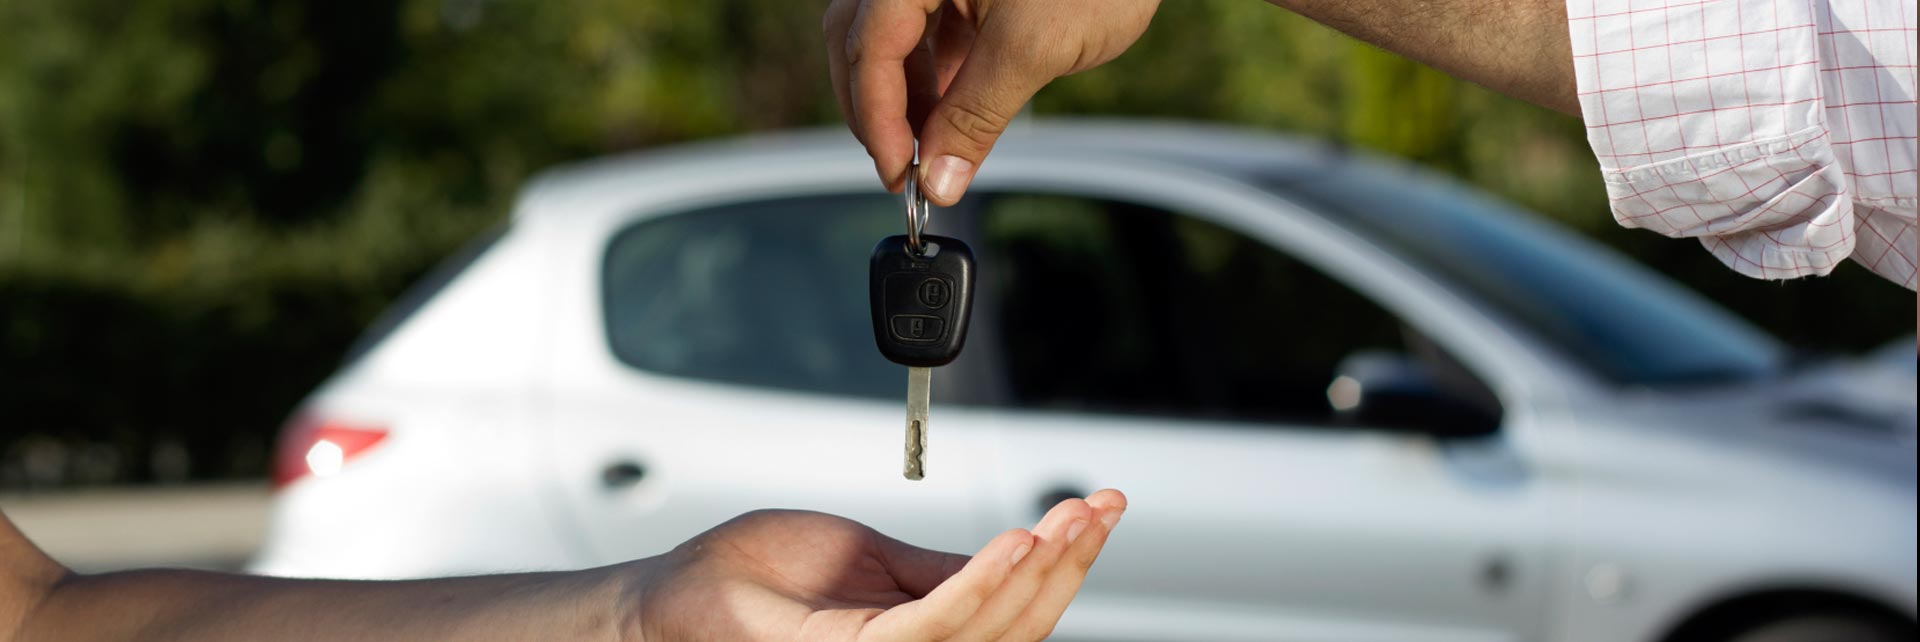 Los Angeles: Commercial Locksmith, Residential Locksmith and Automotive Locksmith